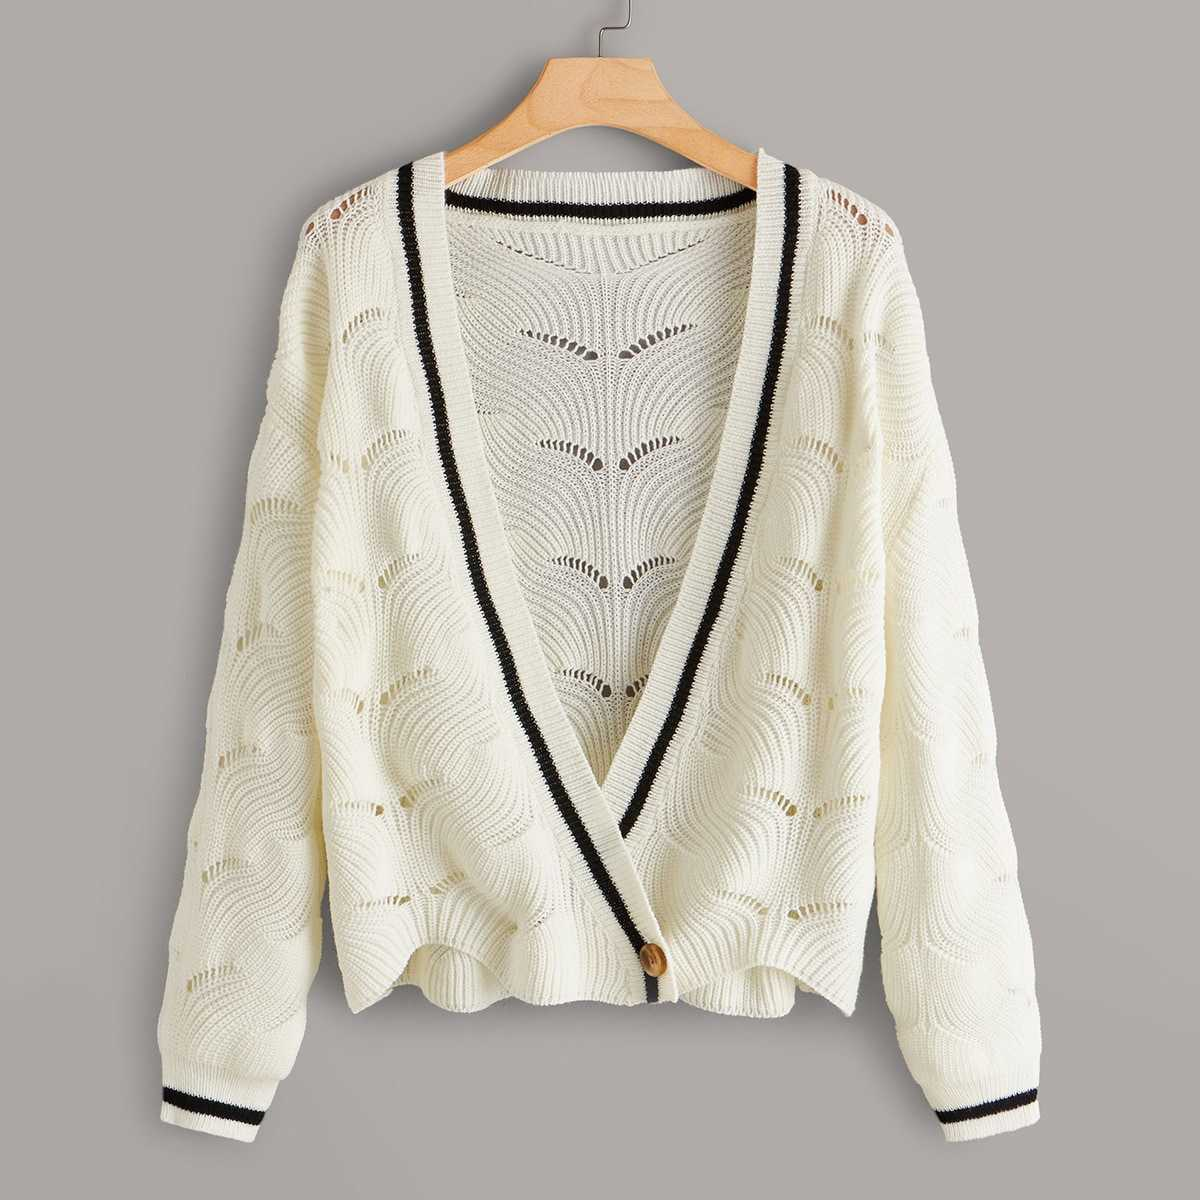 Plus Single Button Contrast Tape Cardigan in White by ROMWE on GOOFASH